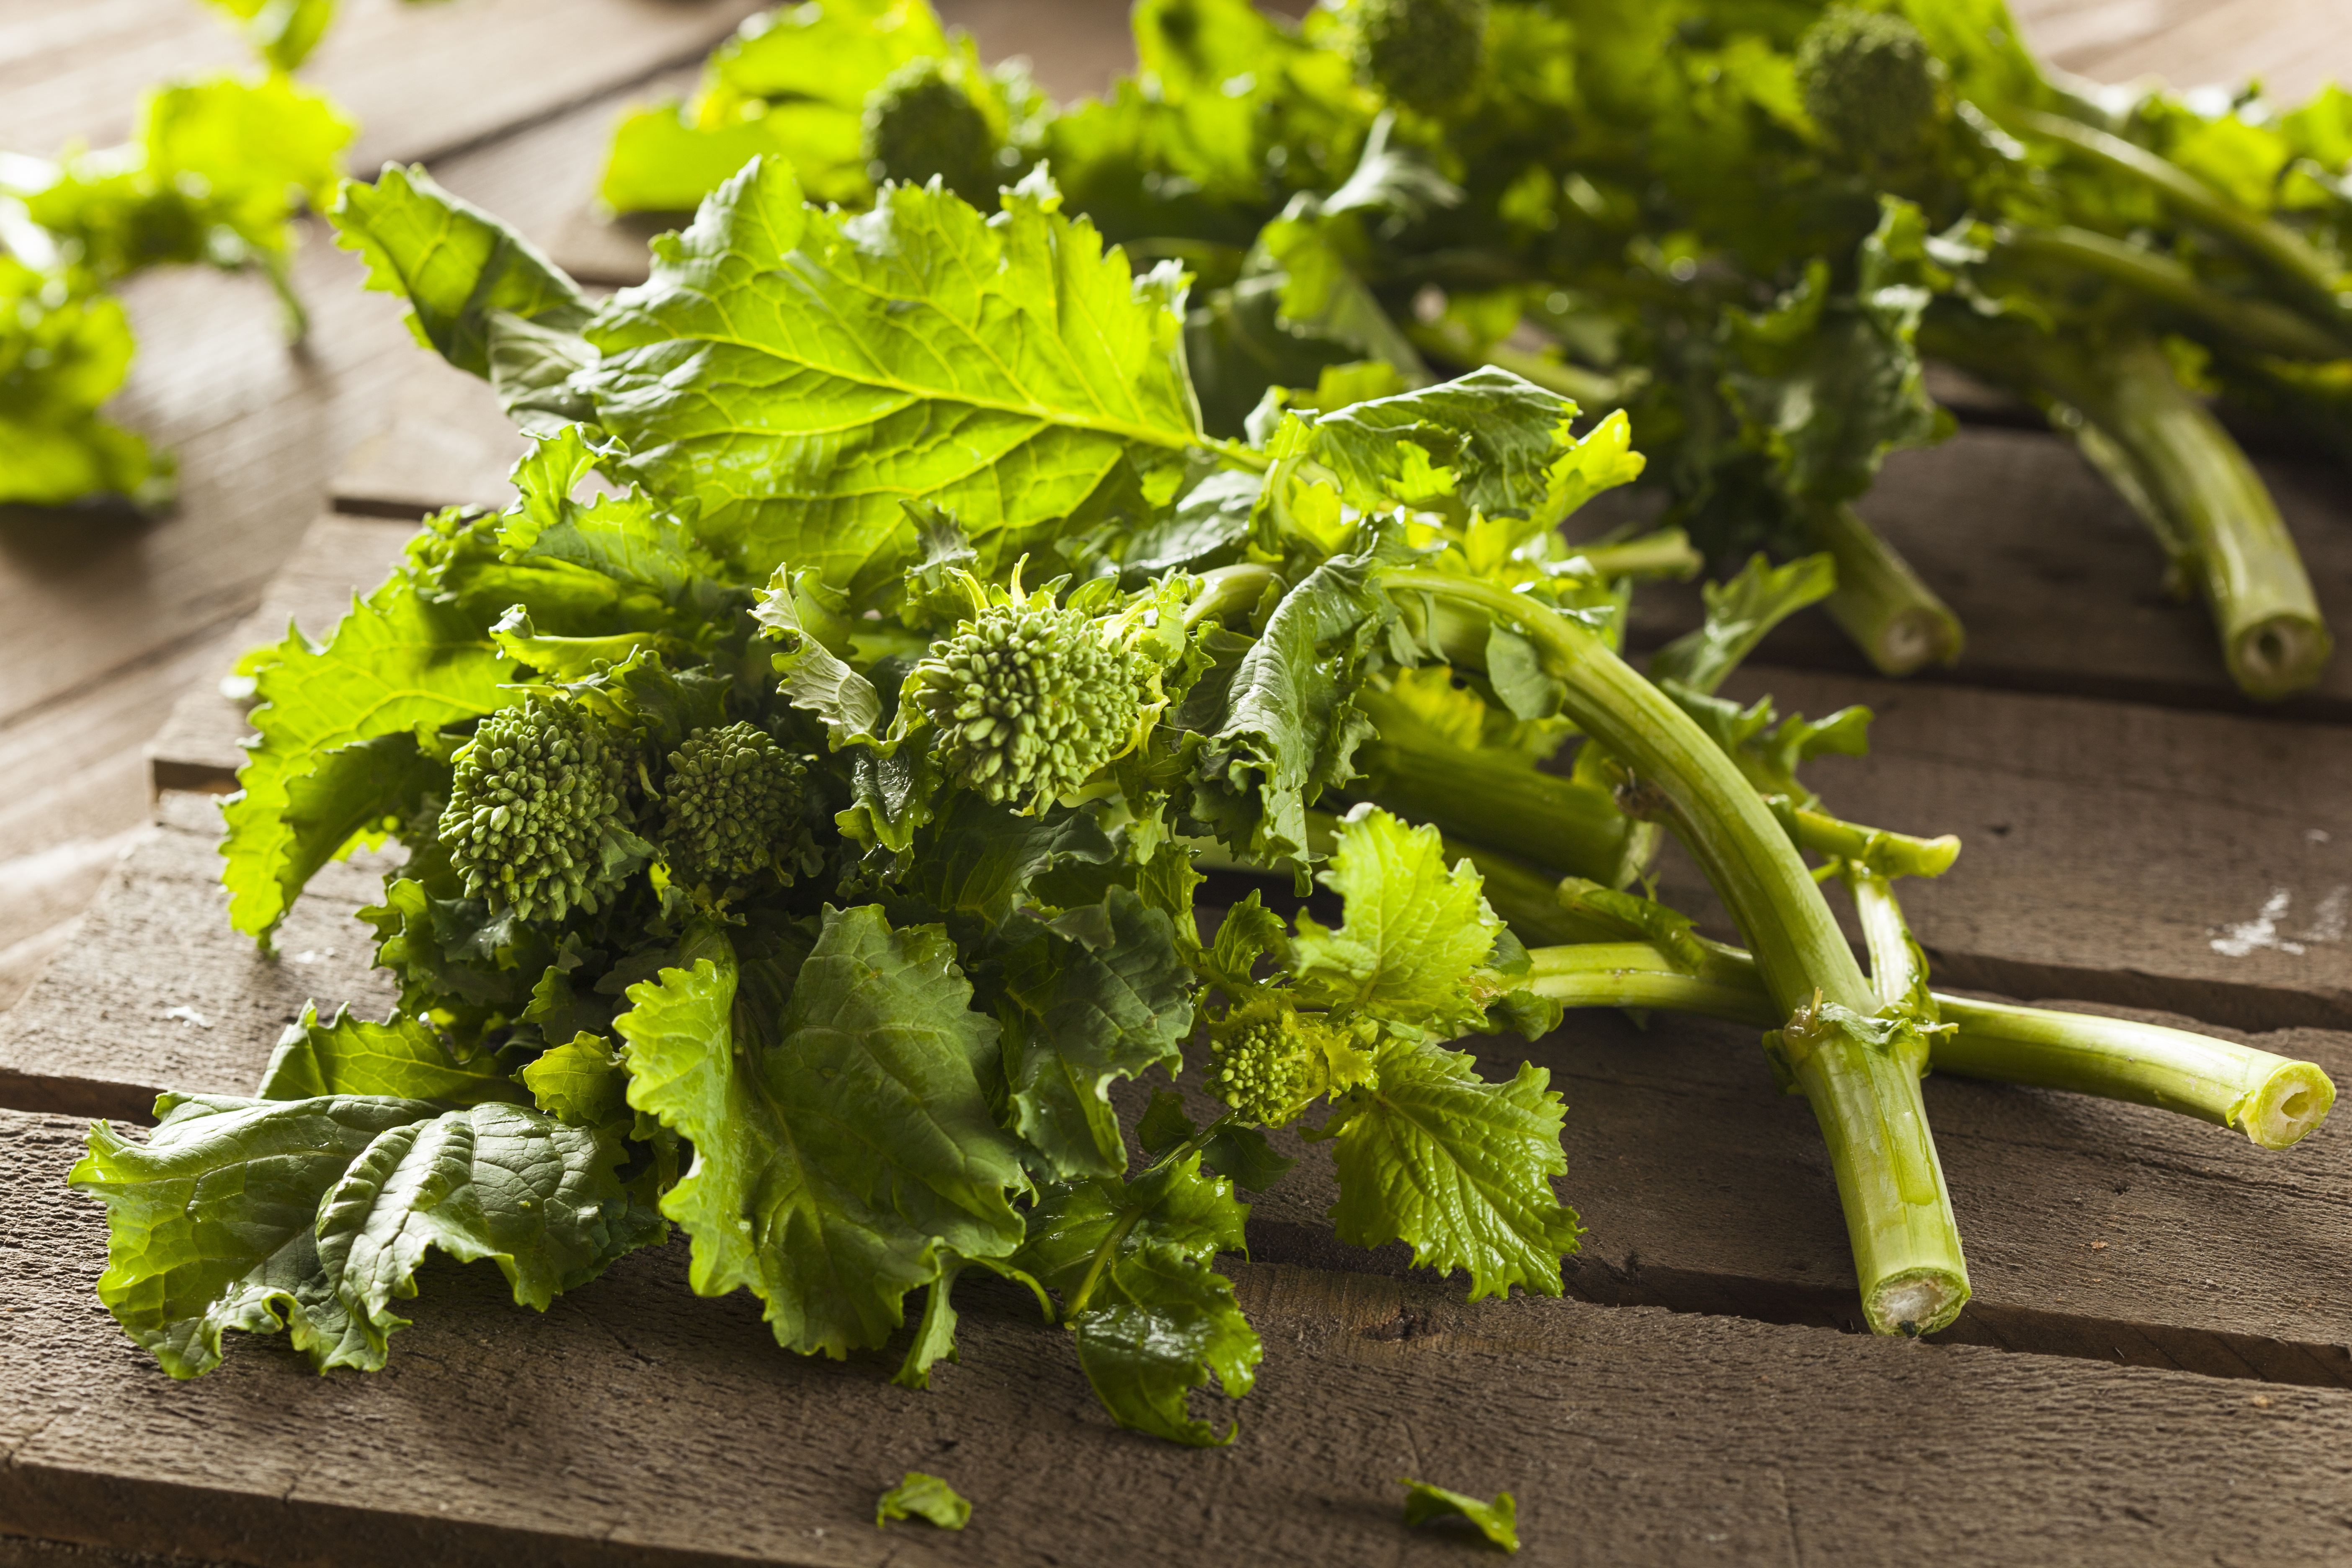 Embrace bitter foods such as rapini. They're good and good for your overall health.